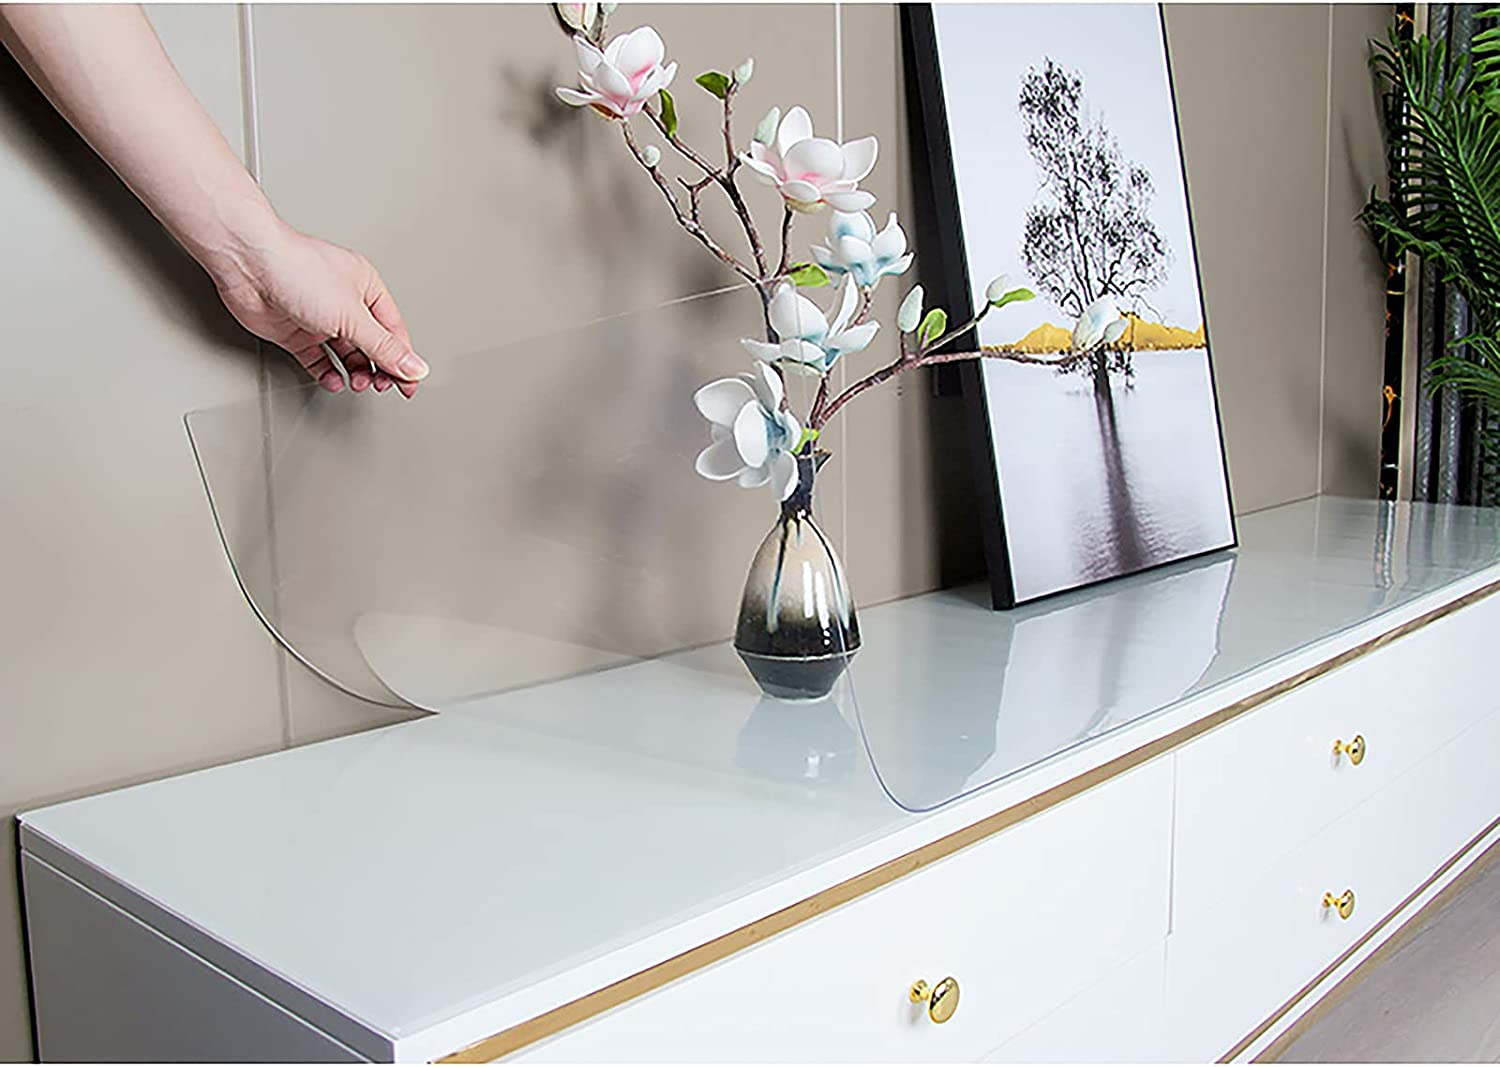 ZXCVASDF Transparent Tablecloth Clear PVC Protector Table Cover depot Ranking TOP2